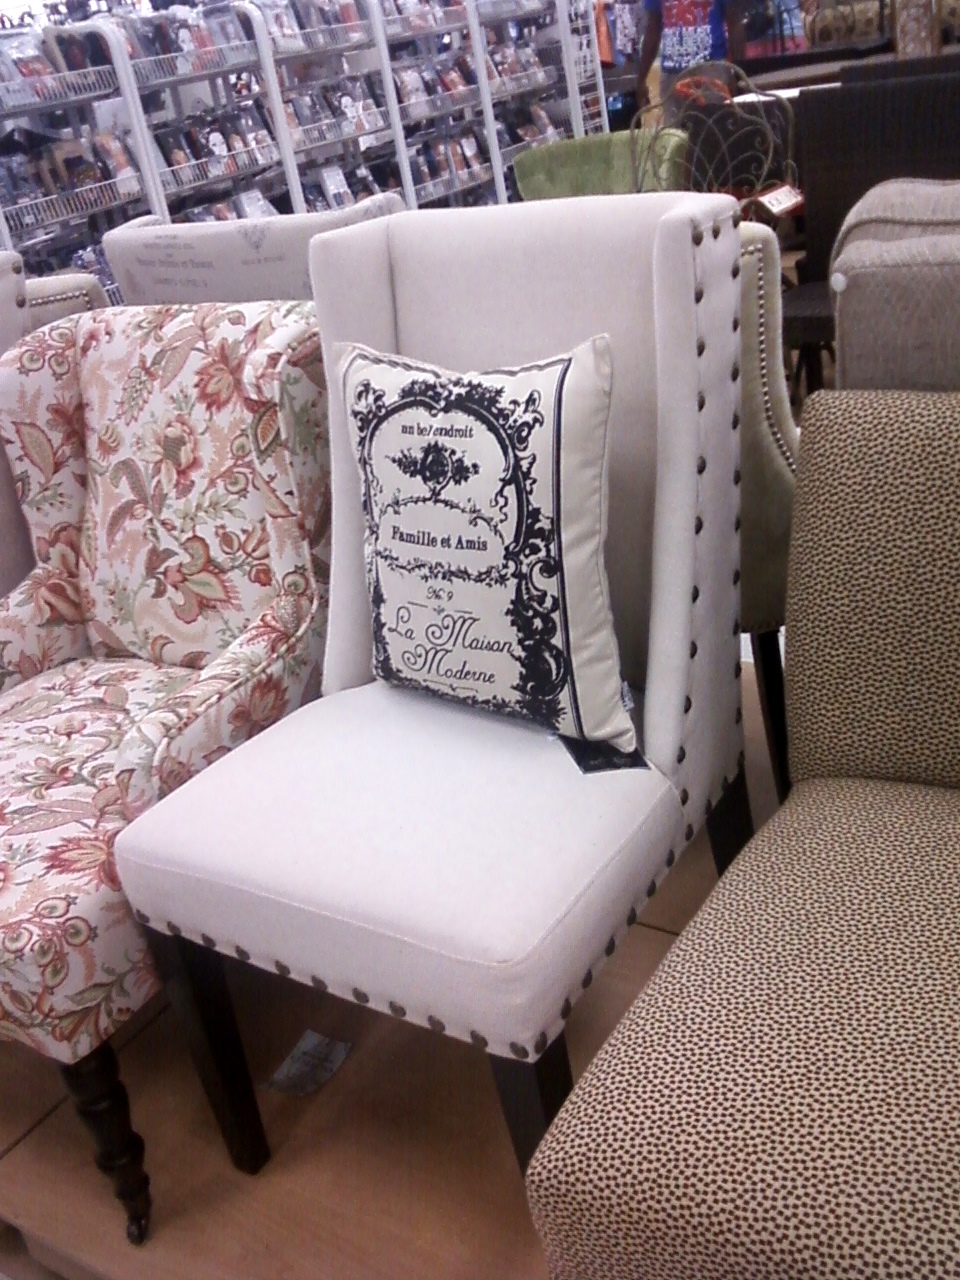 tj maxx chair recliner covers uk marshall s finds the thrifty abode thursday july 14 2011